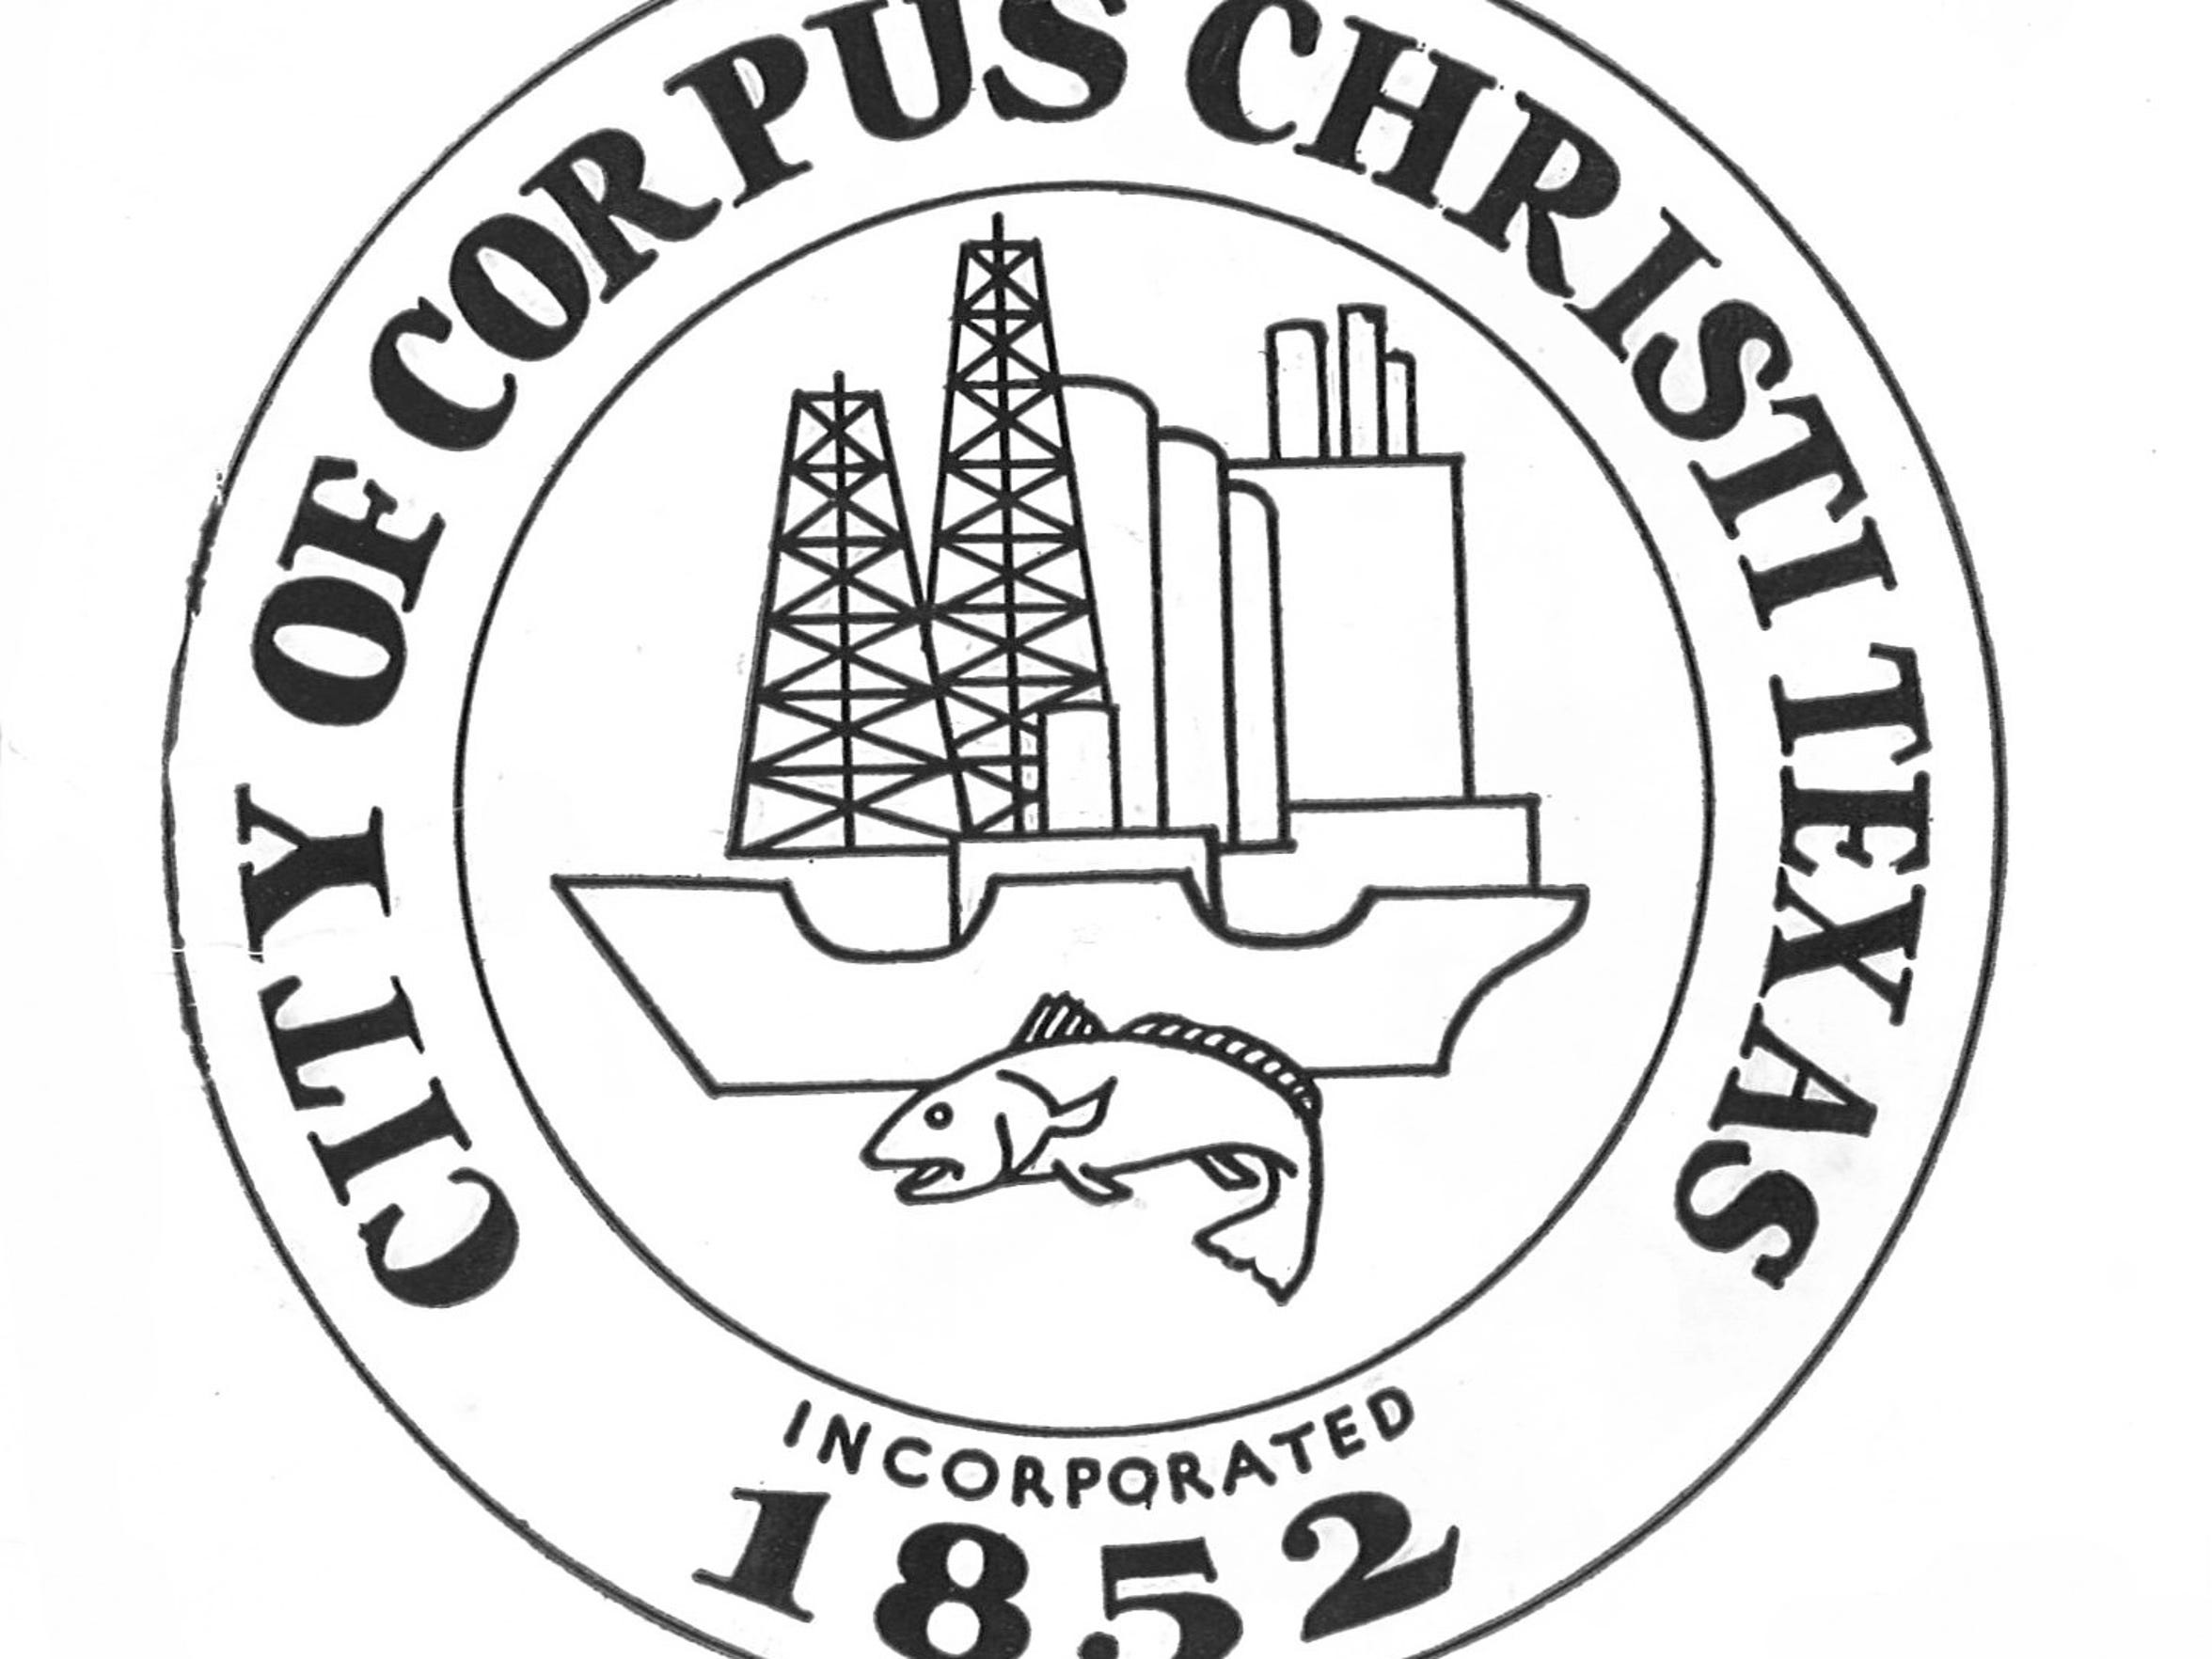 This was the official seal of Corpus Christi until it was redesigned in 1999.